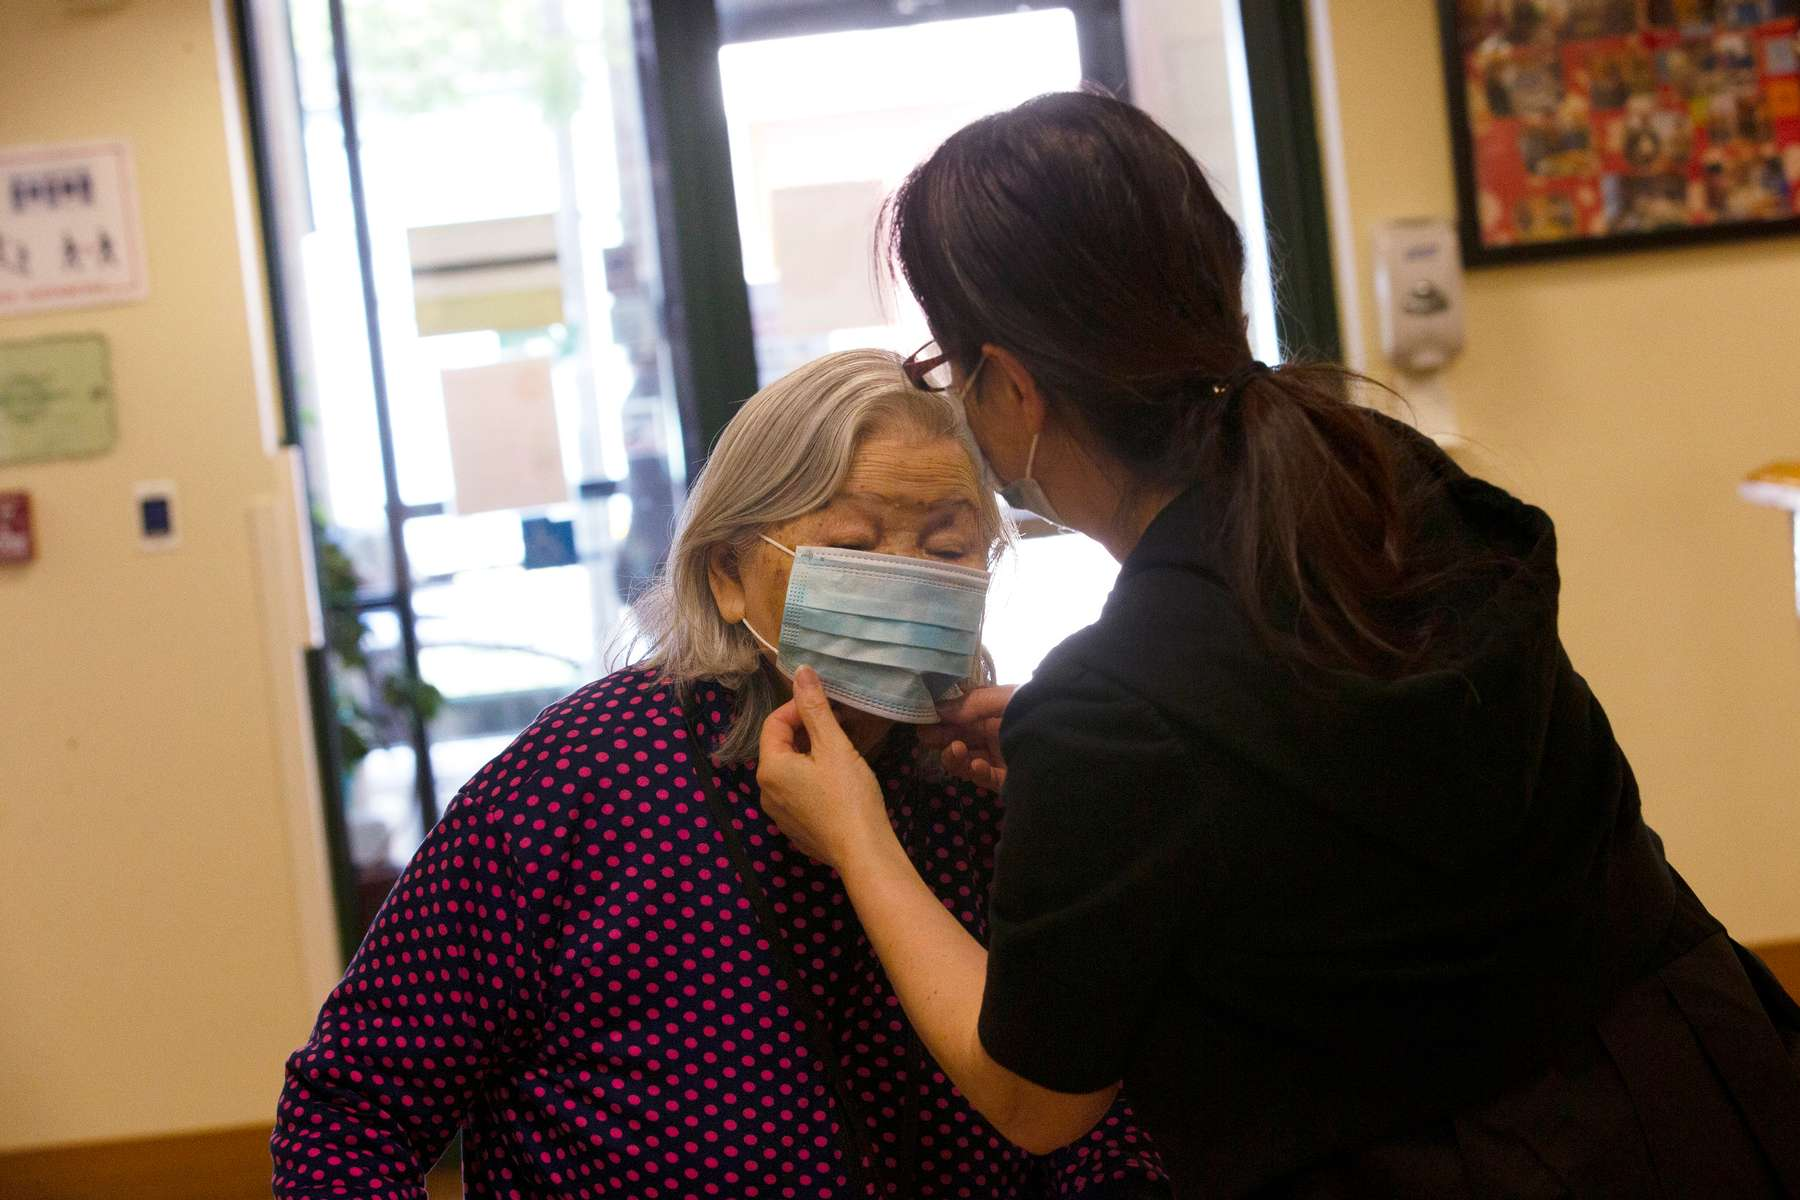 """Sherri Chu, the front desk coordinator at the Legacy House, and assisted living facility associated with the International Community Health Center, fixes a mask on resident Chen Zhixian. """"We try our best to make sure the residents wear a mask,"""" she says in Seattle, Wash. on May 29, 2020."""